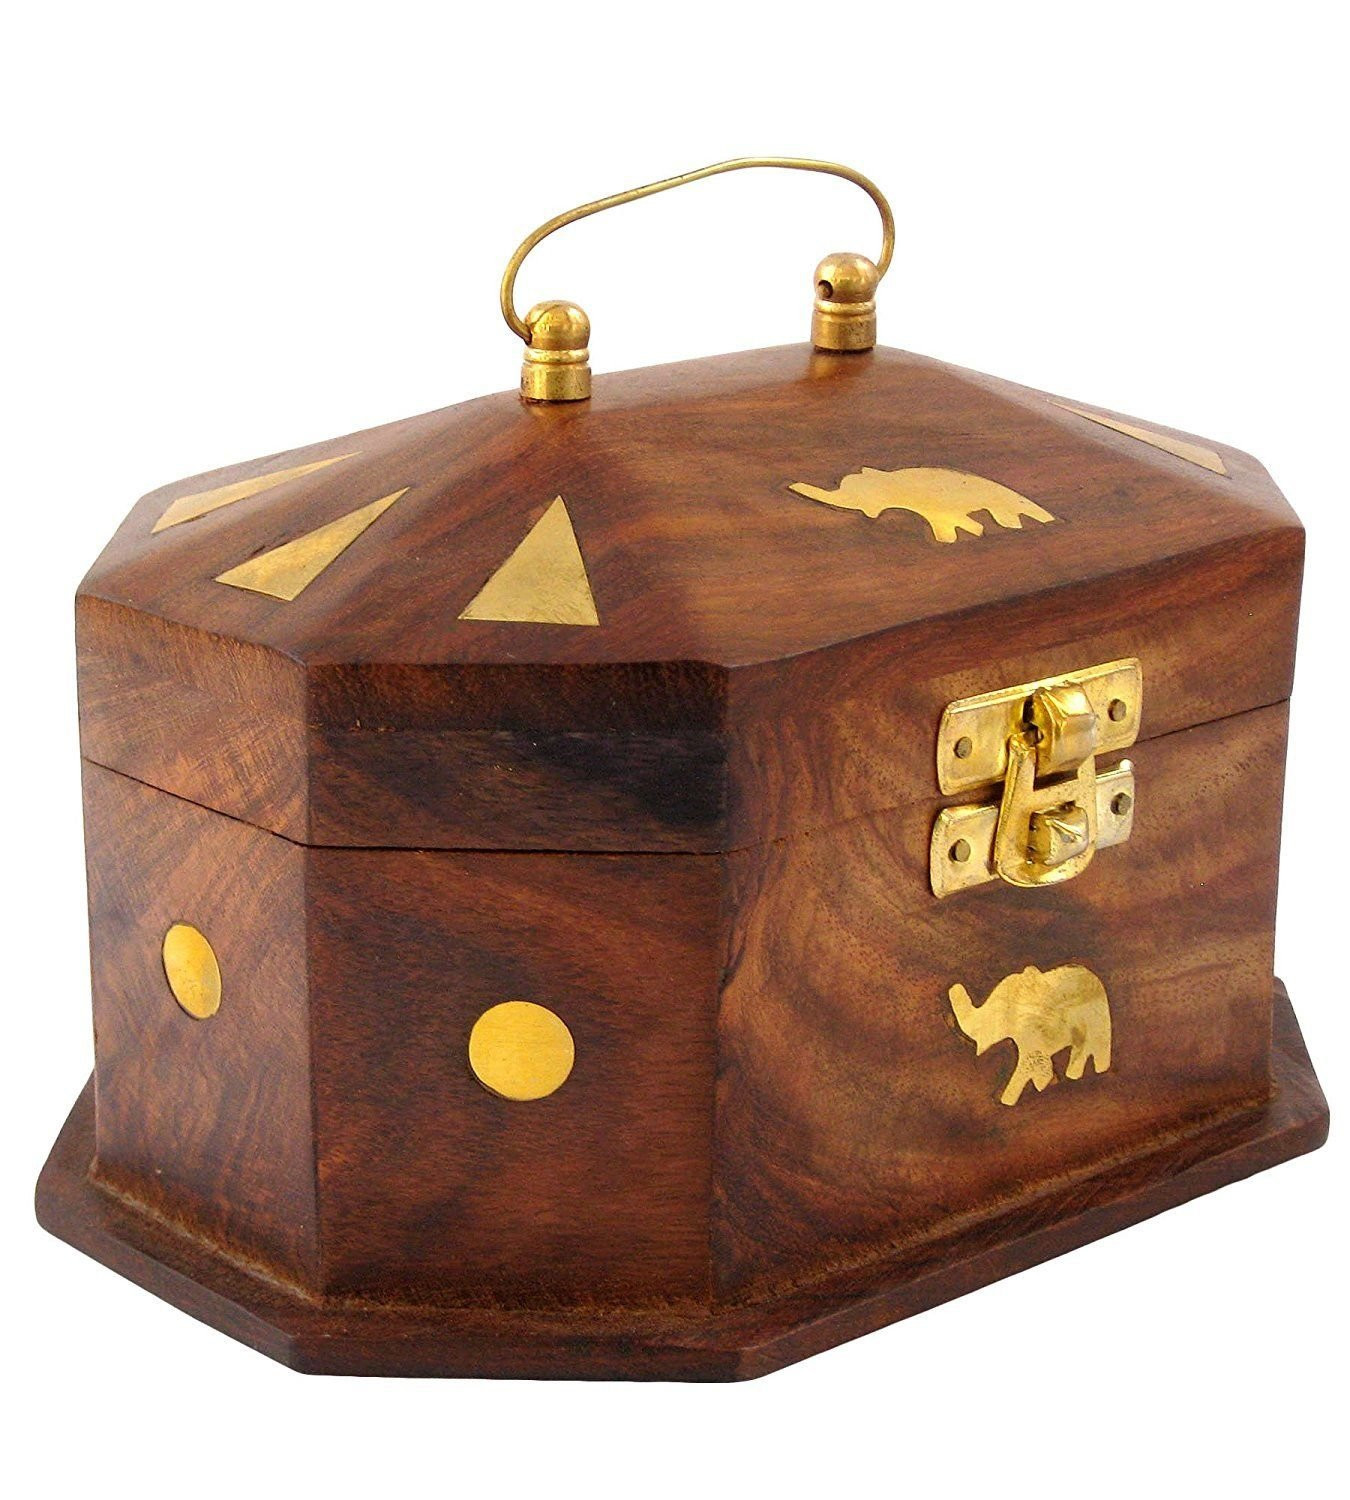 Handmade Wooden Jewellery Box for Women Jewel Organizer Elephant Décor, 6 Inches